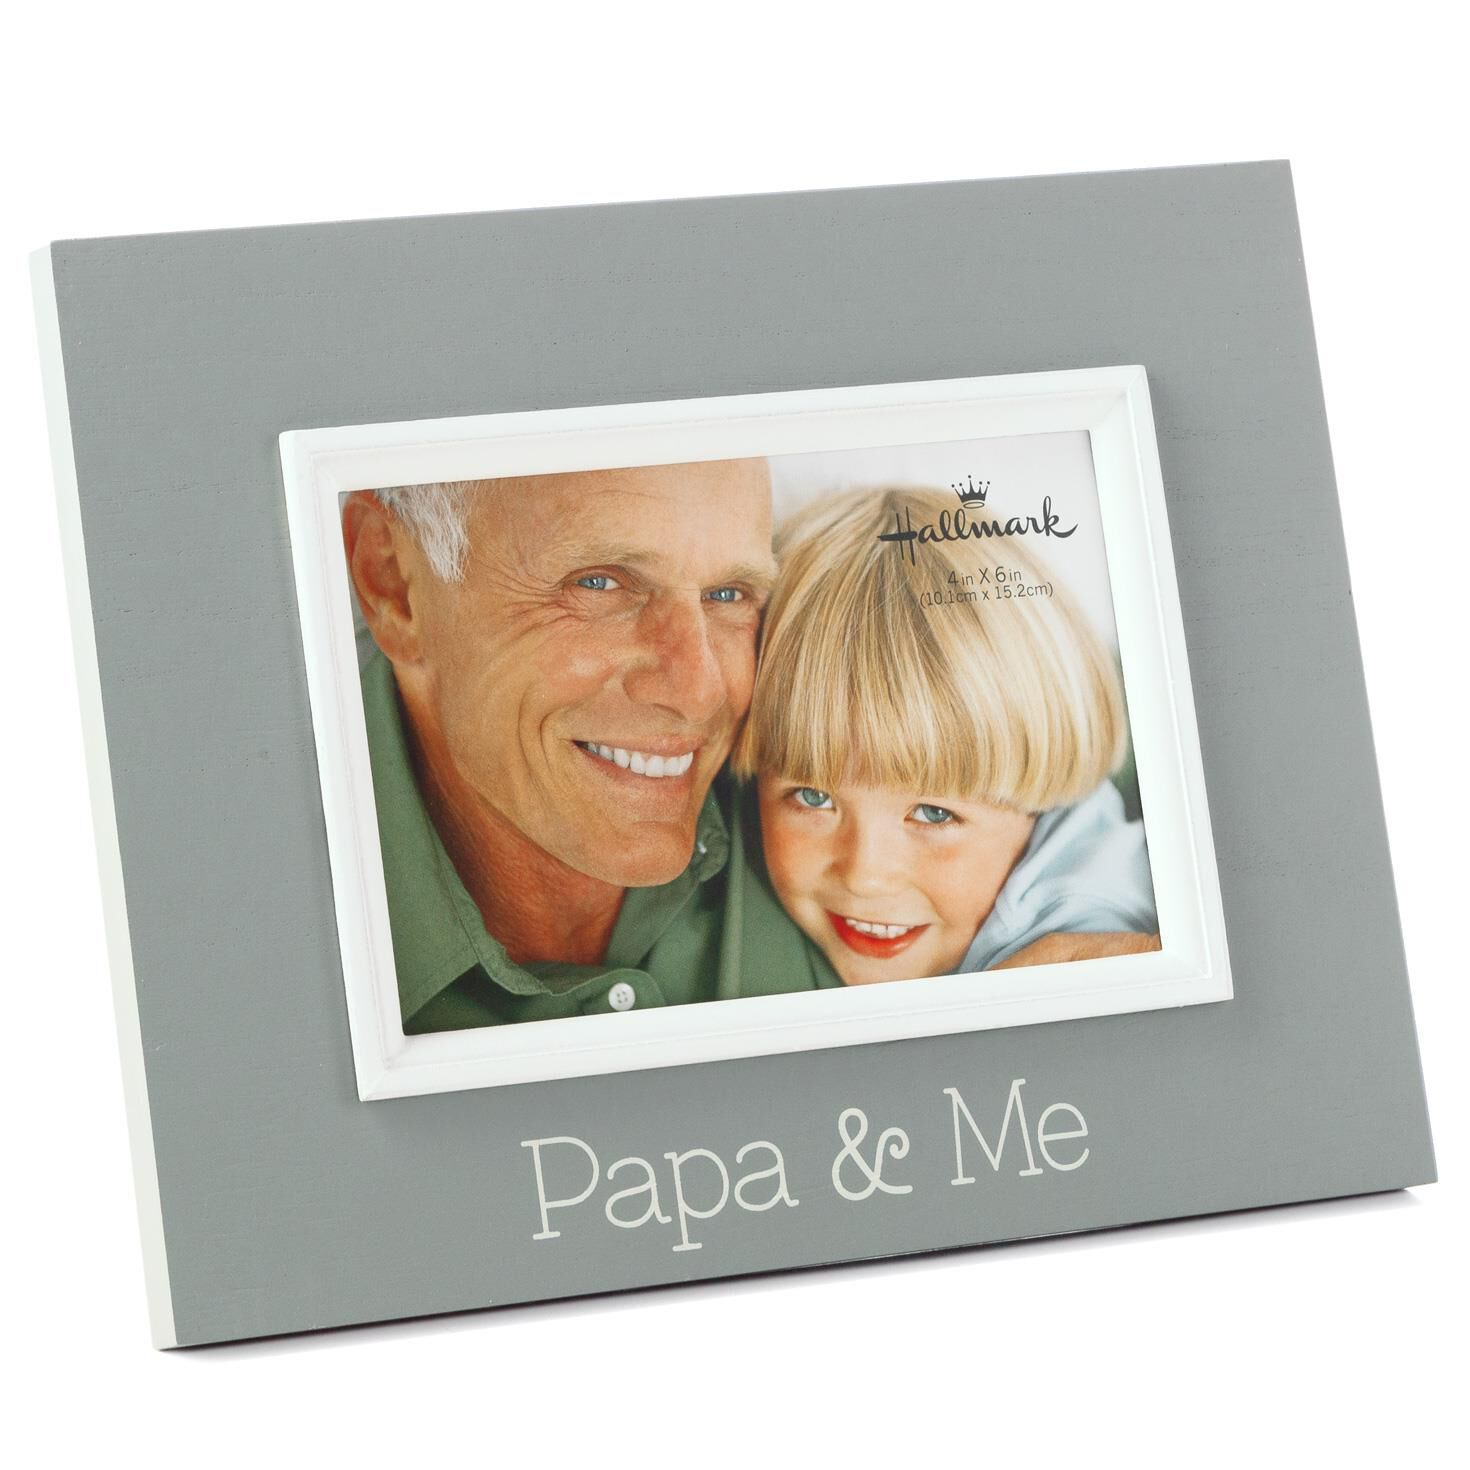 papa me wood malden picture frame 4x6 picture frames hallmark